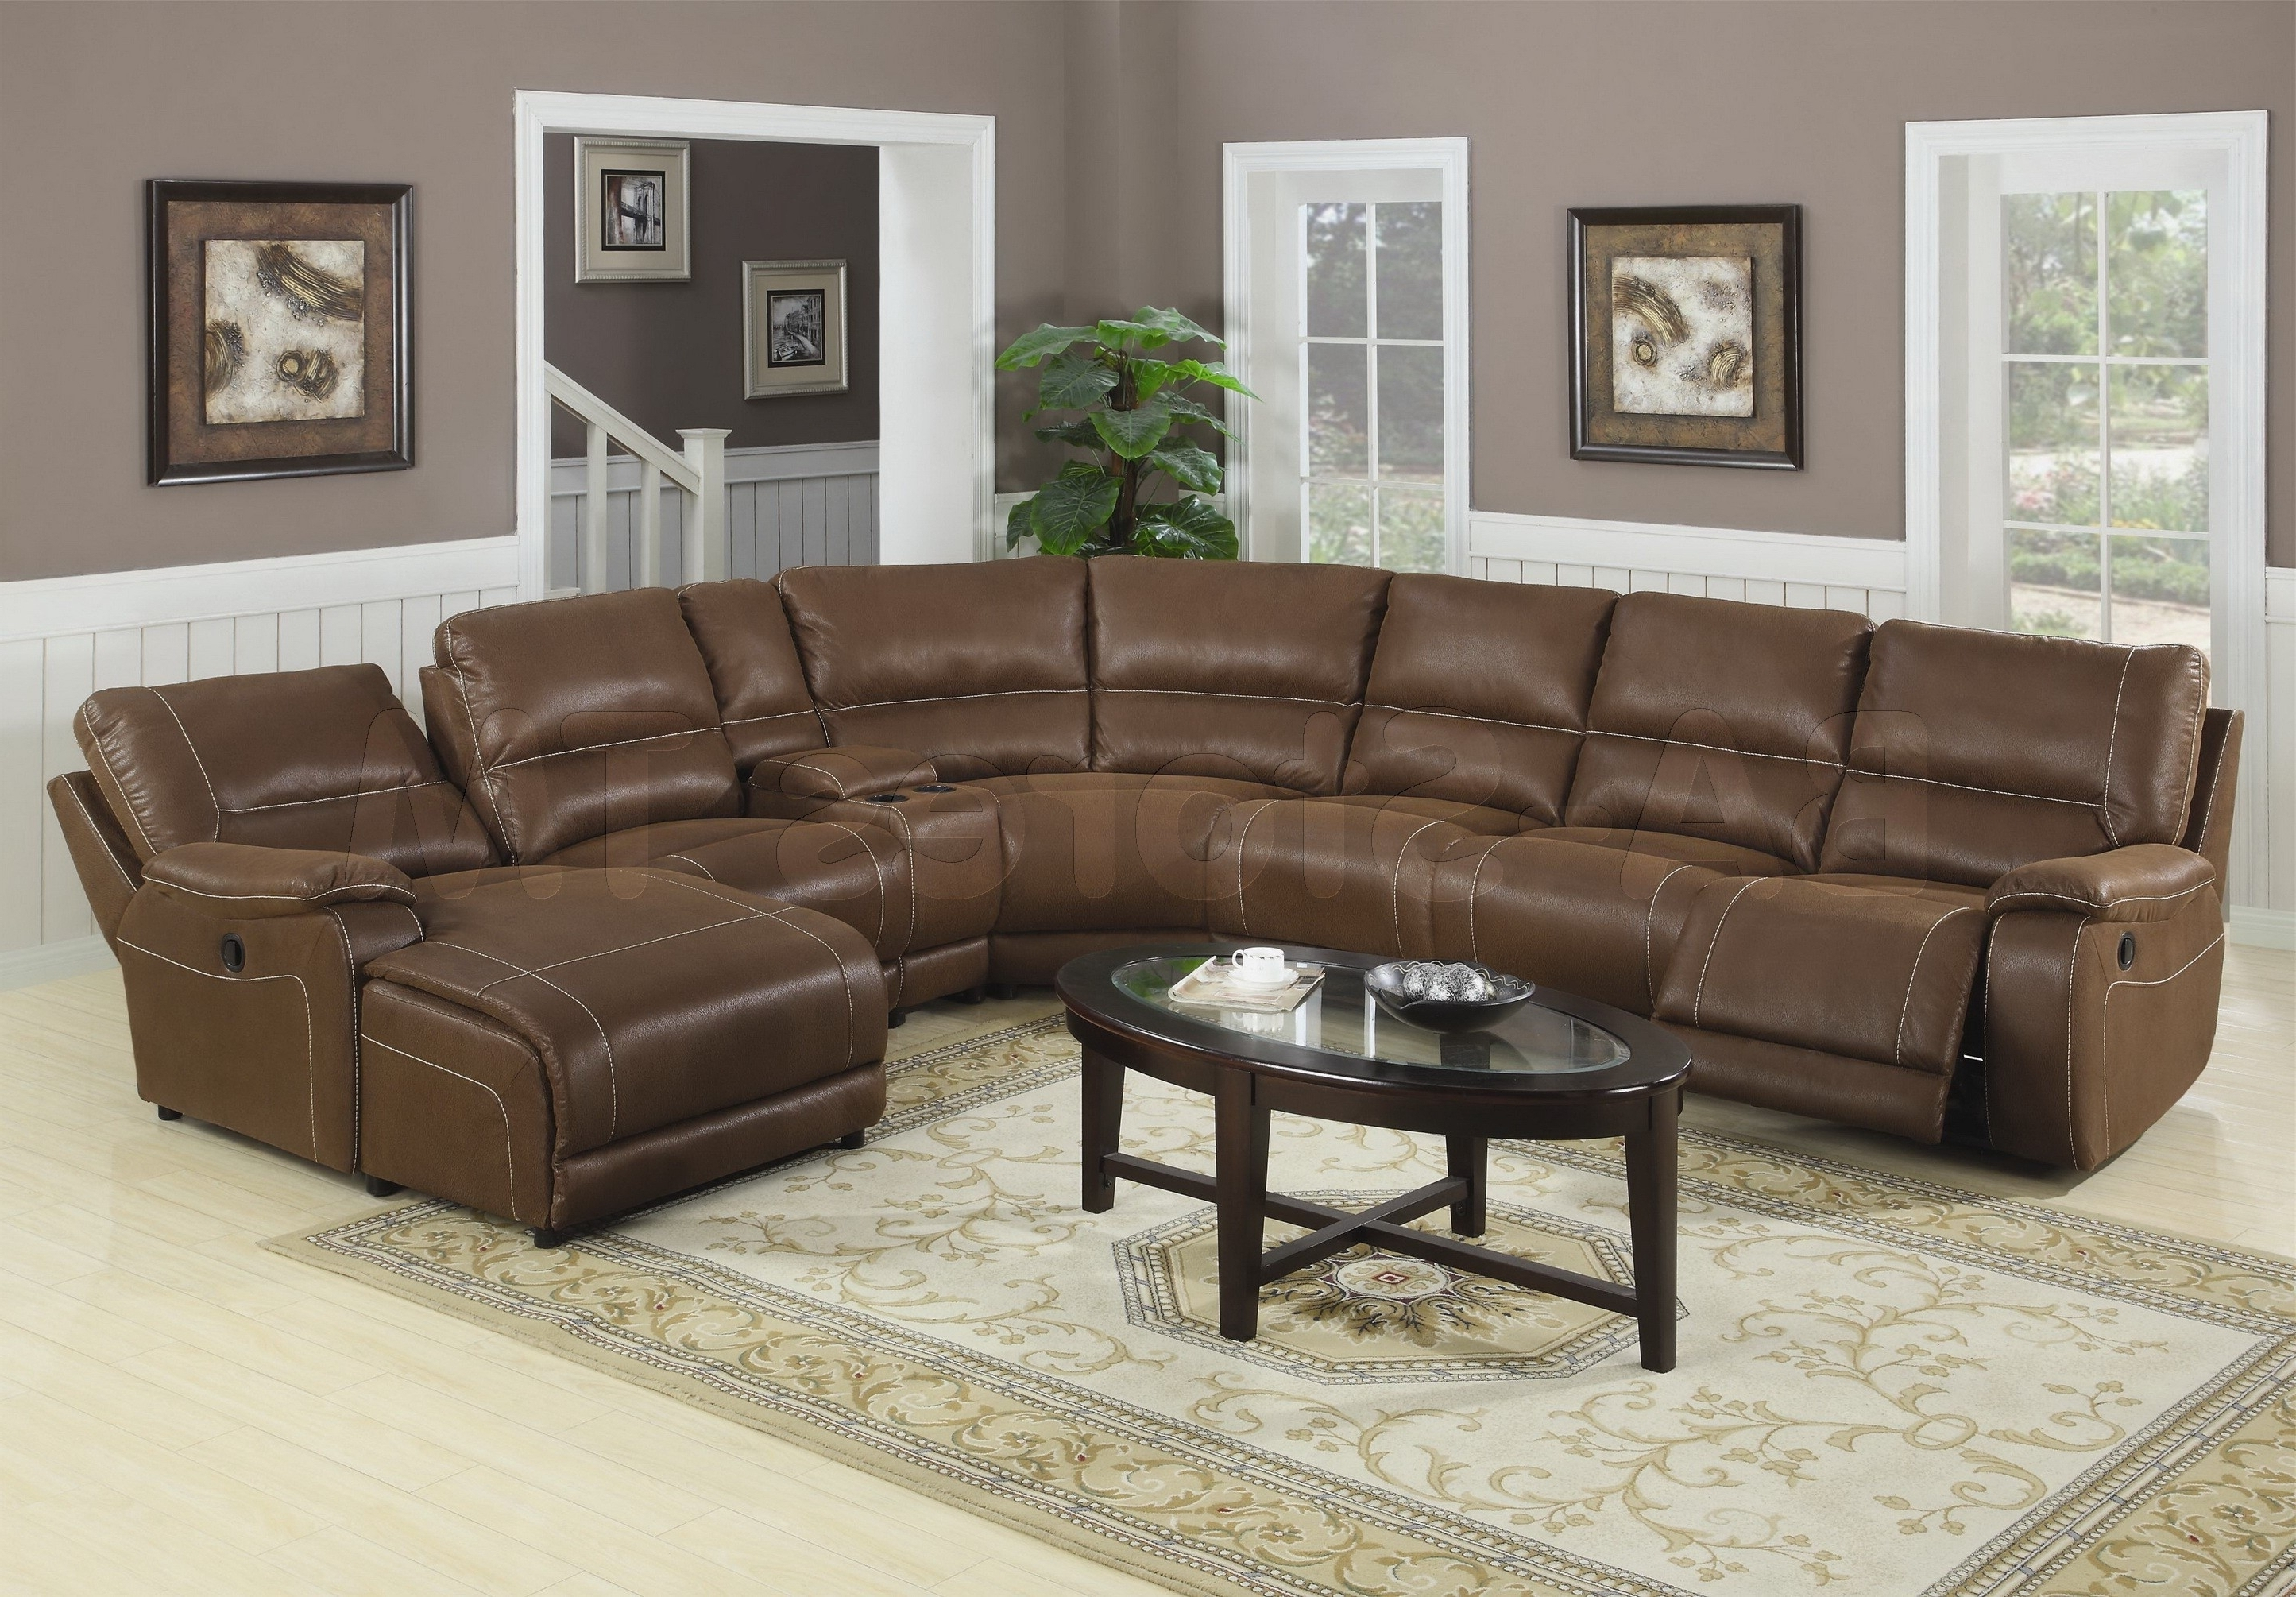 Unique Sectional Sofas Okc 21 With Additional Jonathan Louis Throughout Best And Newest Okc Sectional Sofas (View 6 of 20)